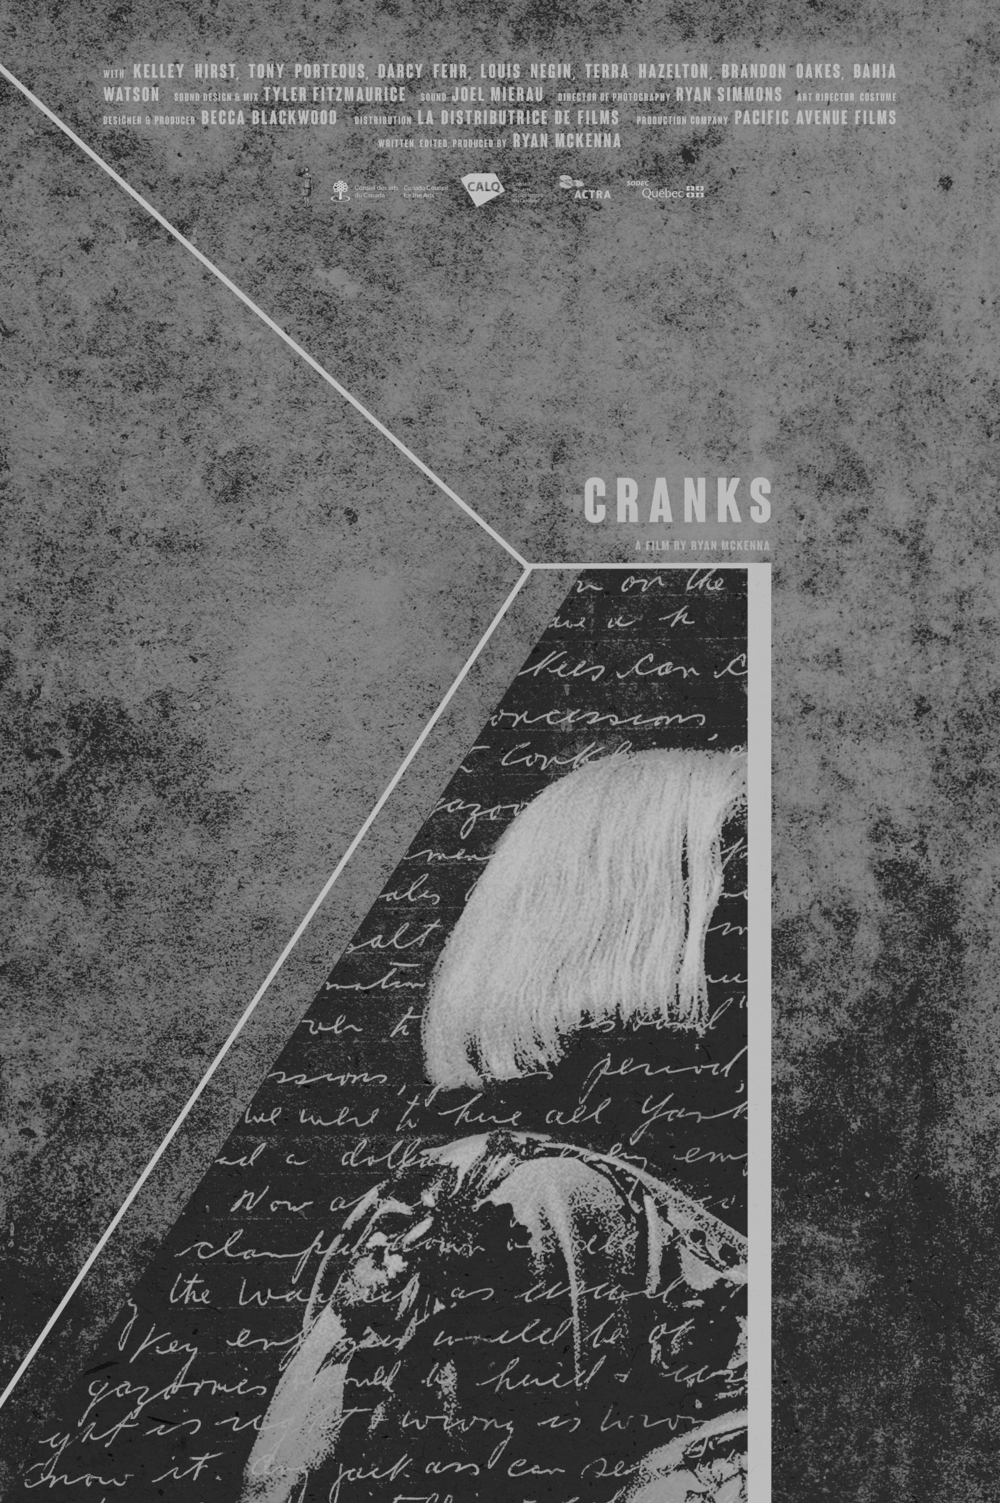 Unofficial Cranks poster